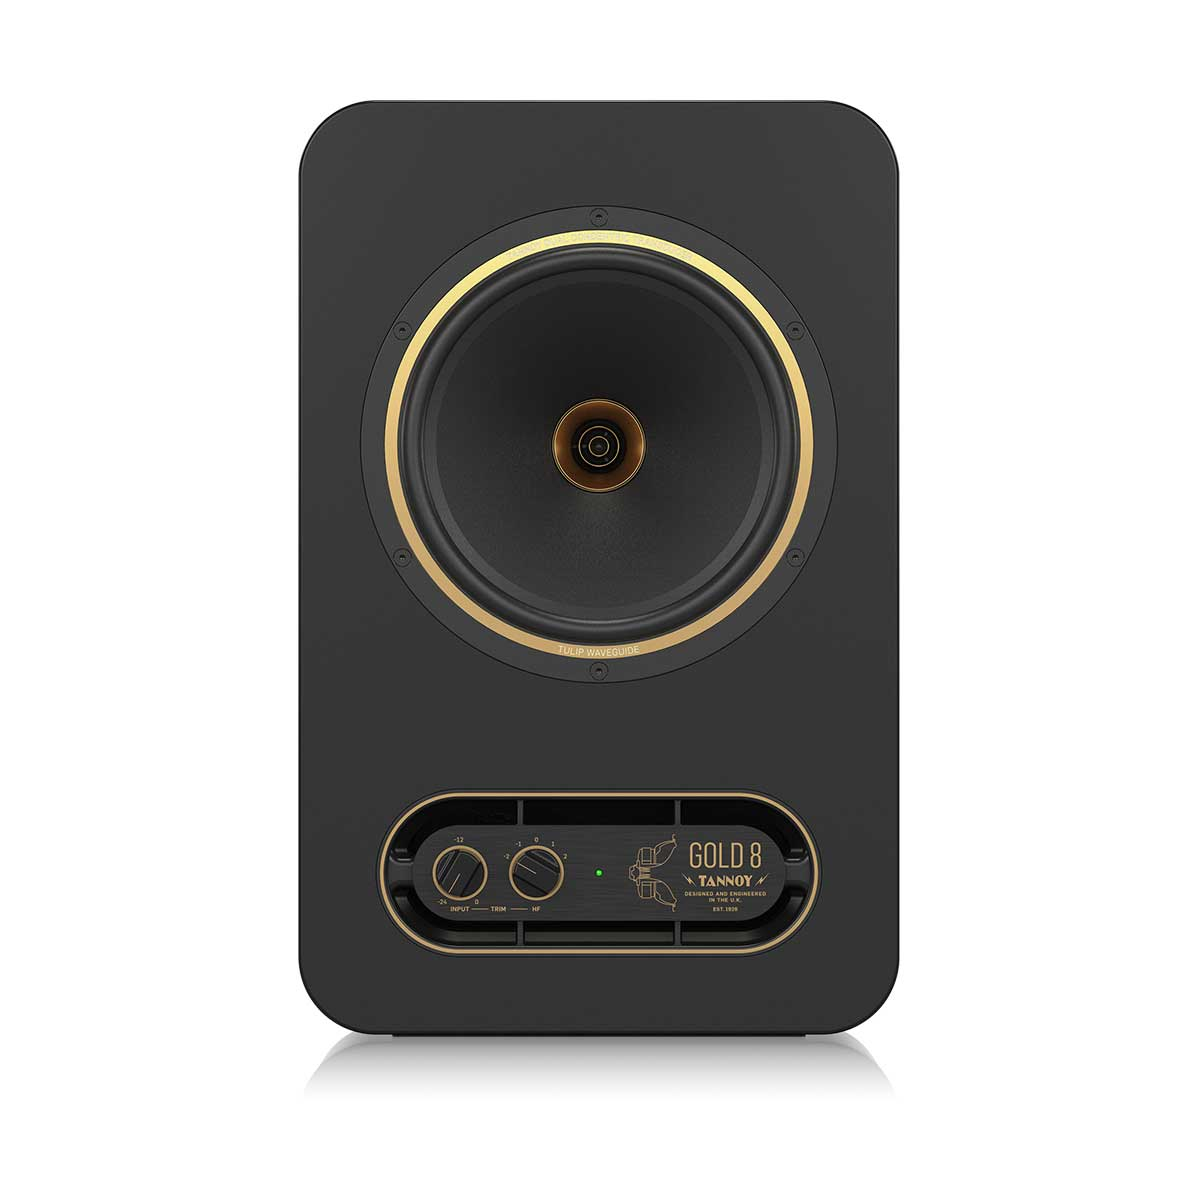 "Tannoy Gold 8 Premium 300-Watt Bi-Amplified Near-field Studio Reference Monitor with Proprietary 8"" Dual Concentric Point Source Technology (SINGLE)"